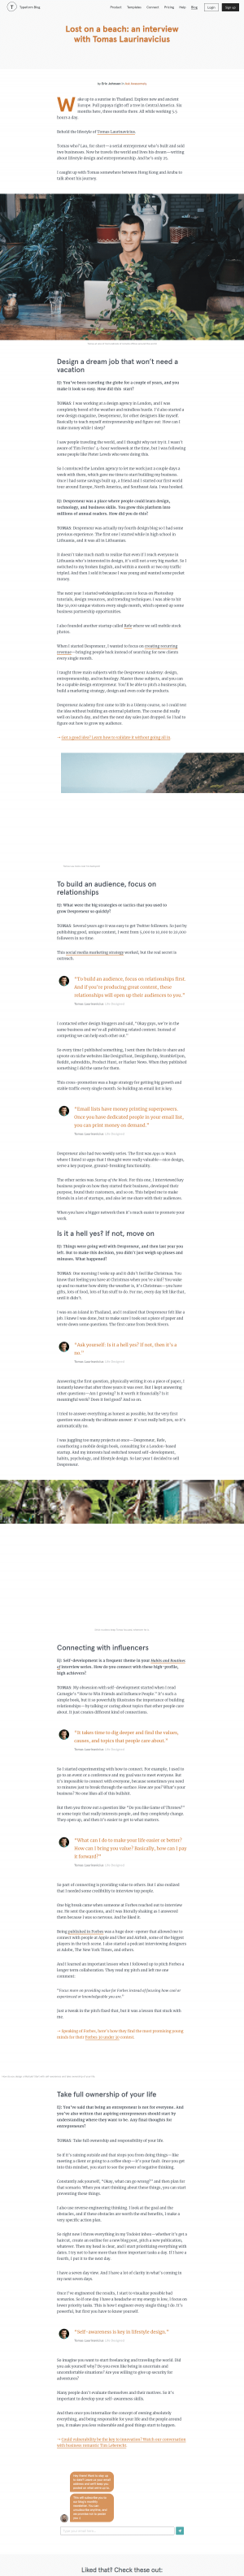 Blog article page - typeform